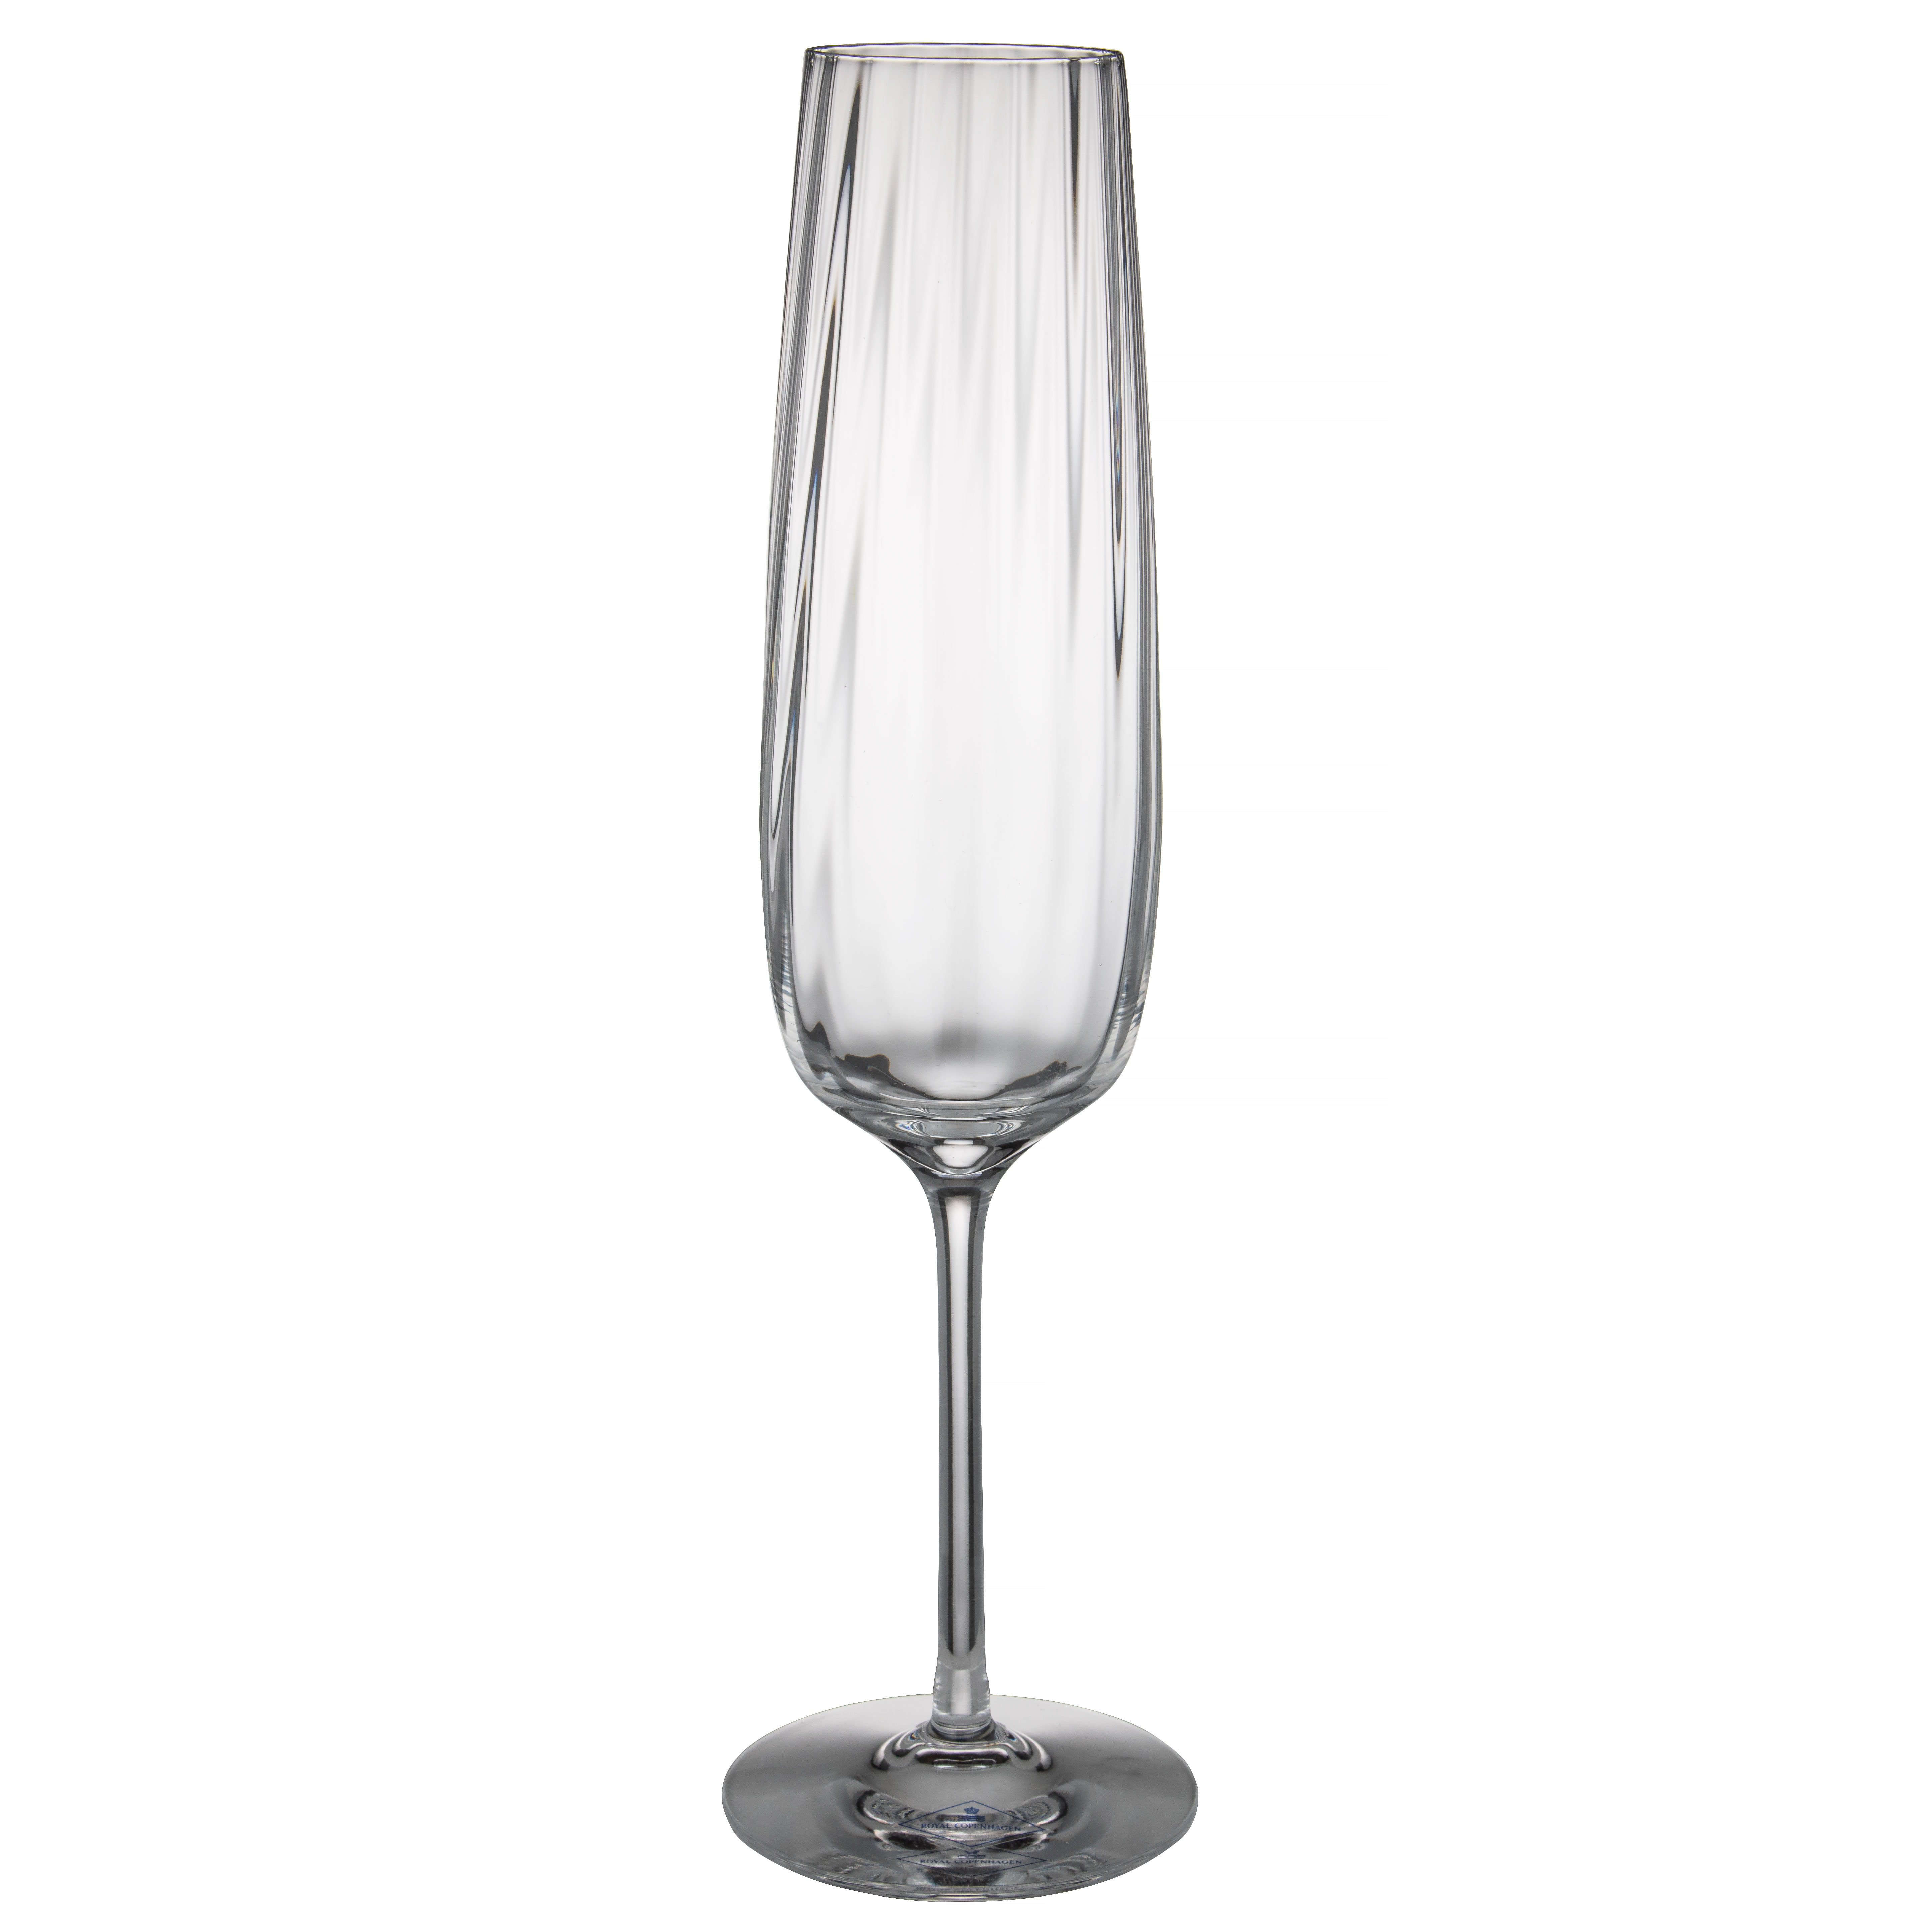 Royal Copenhagen champagne glass